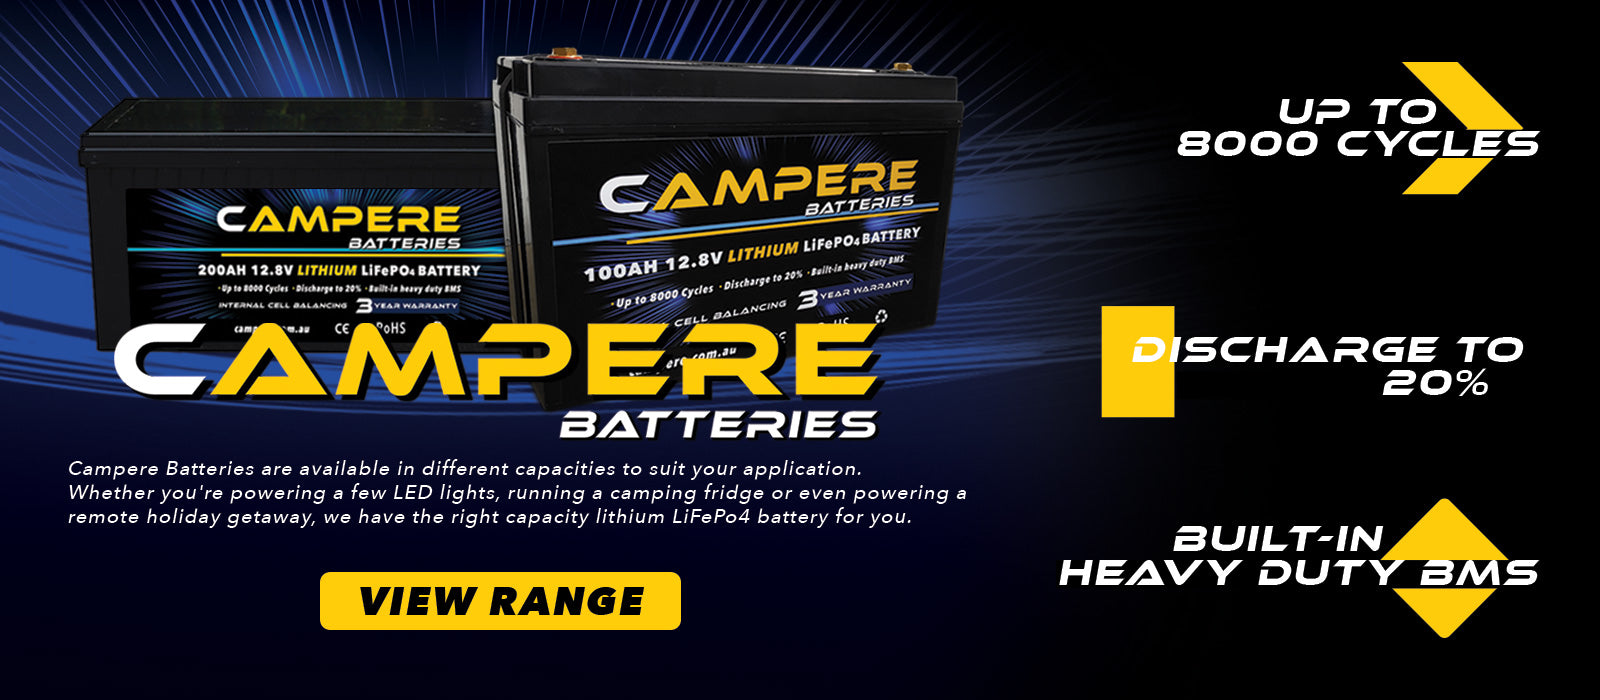 Campere Batteries